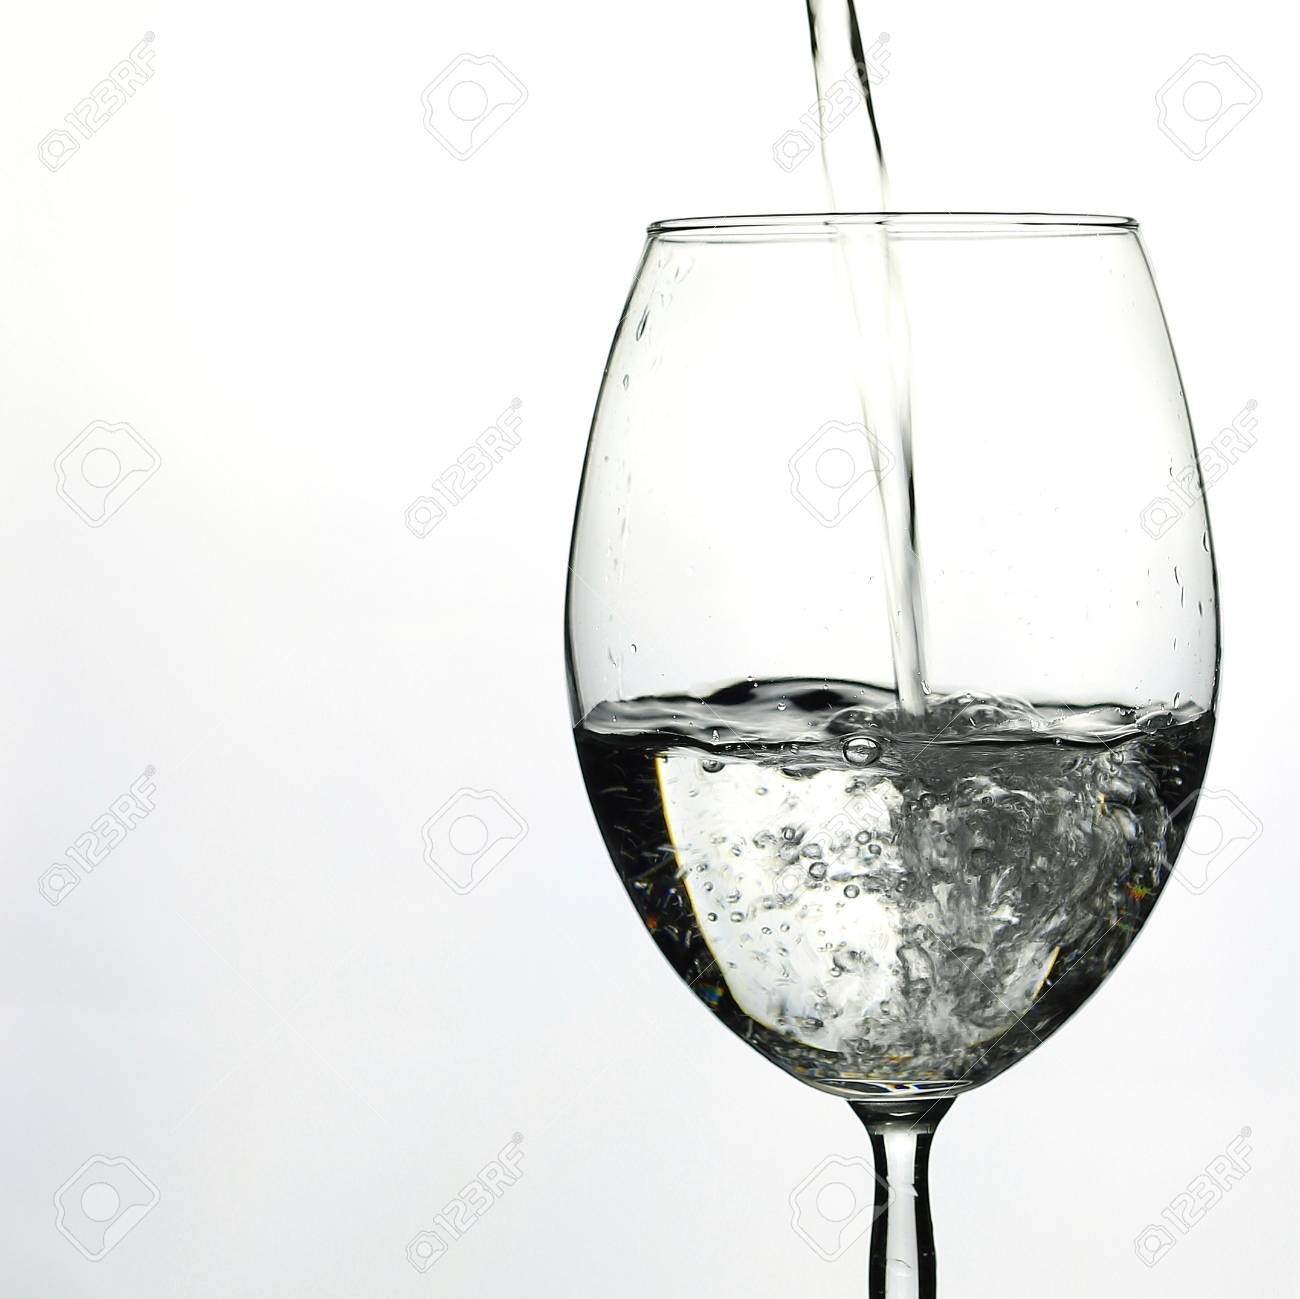 Pouring Water Into Wine Glass On White Background